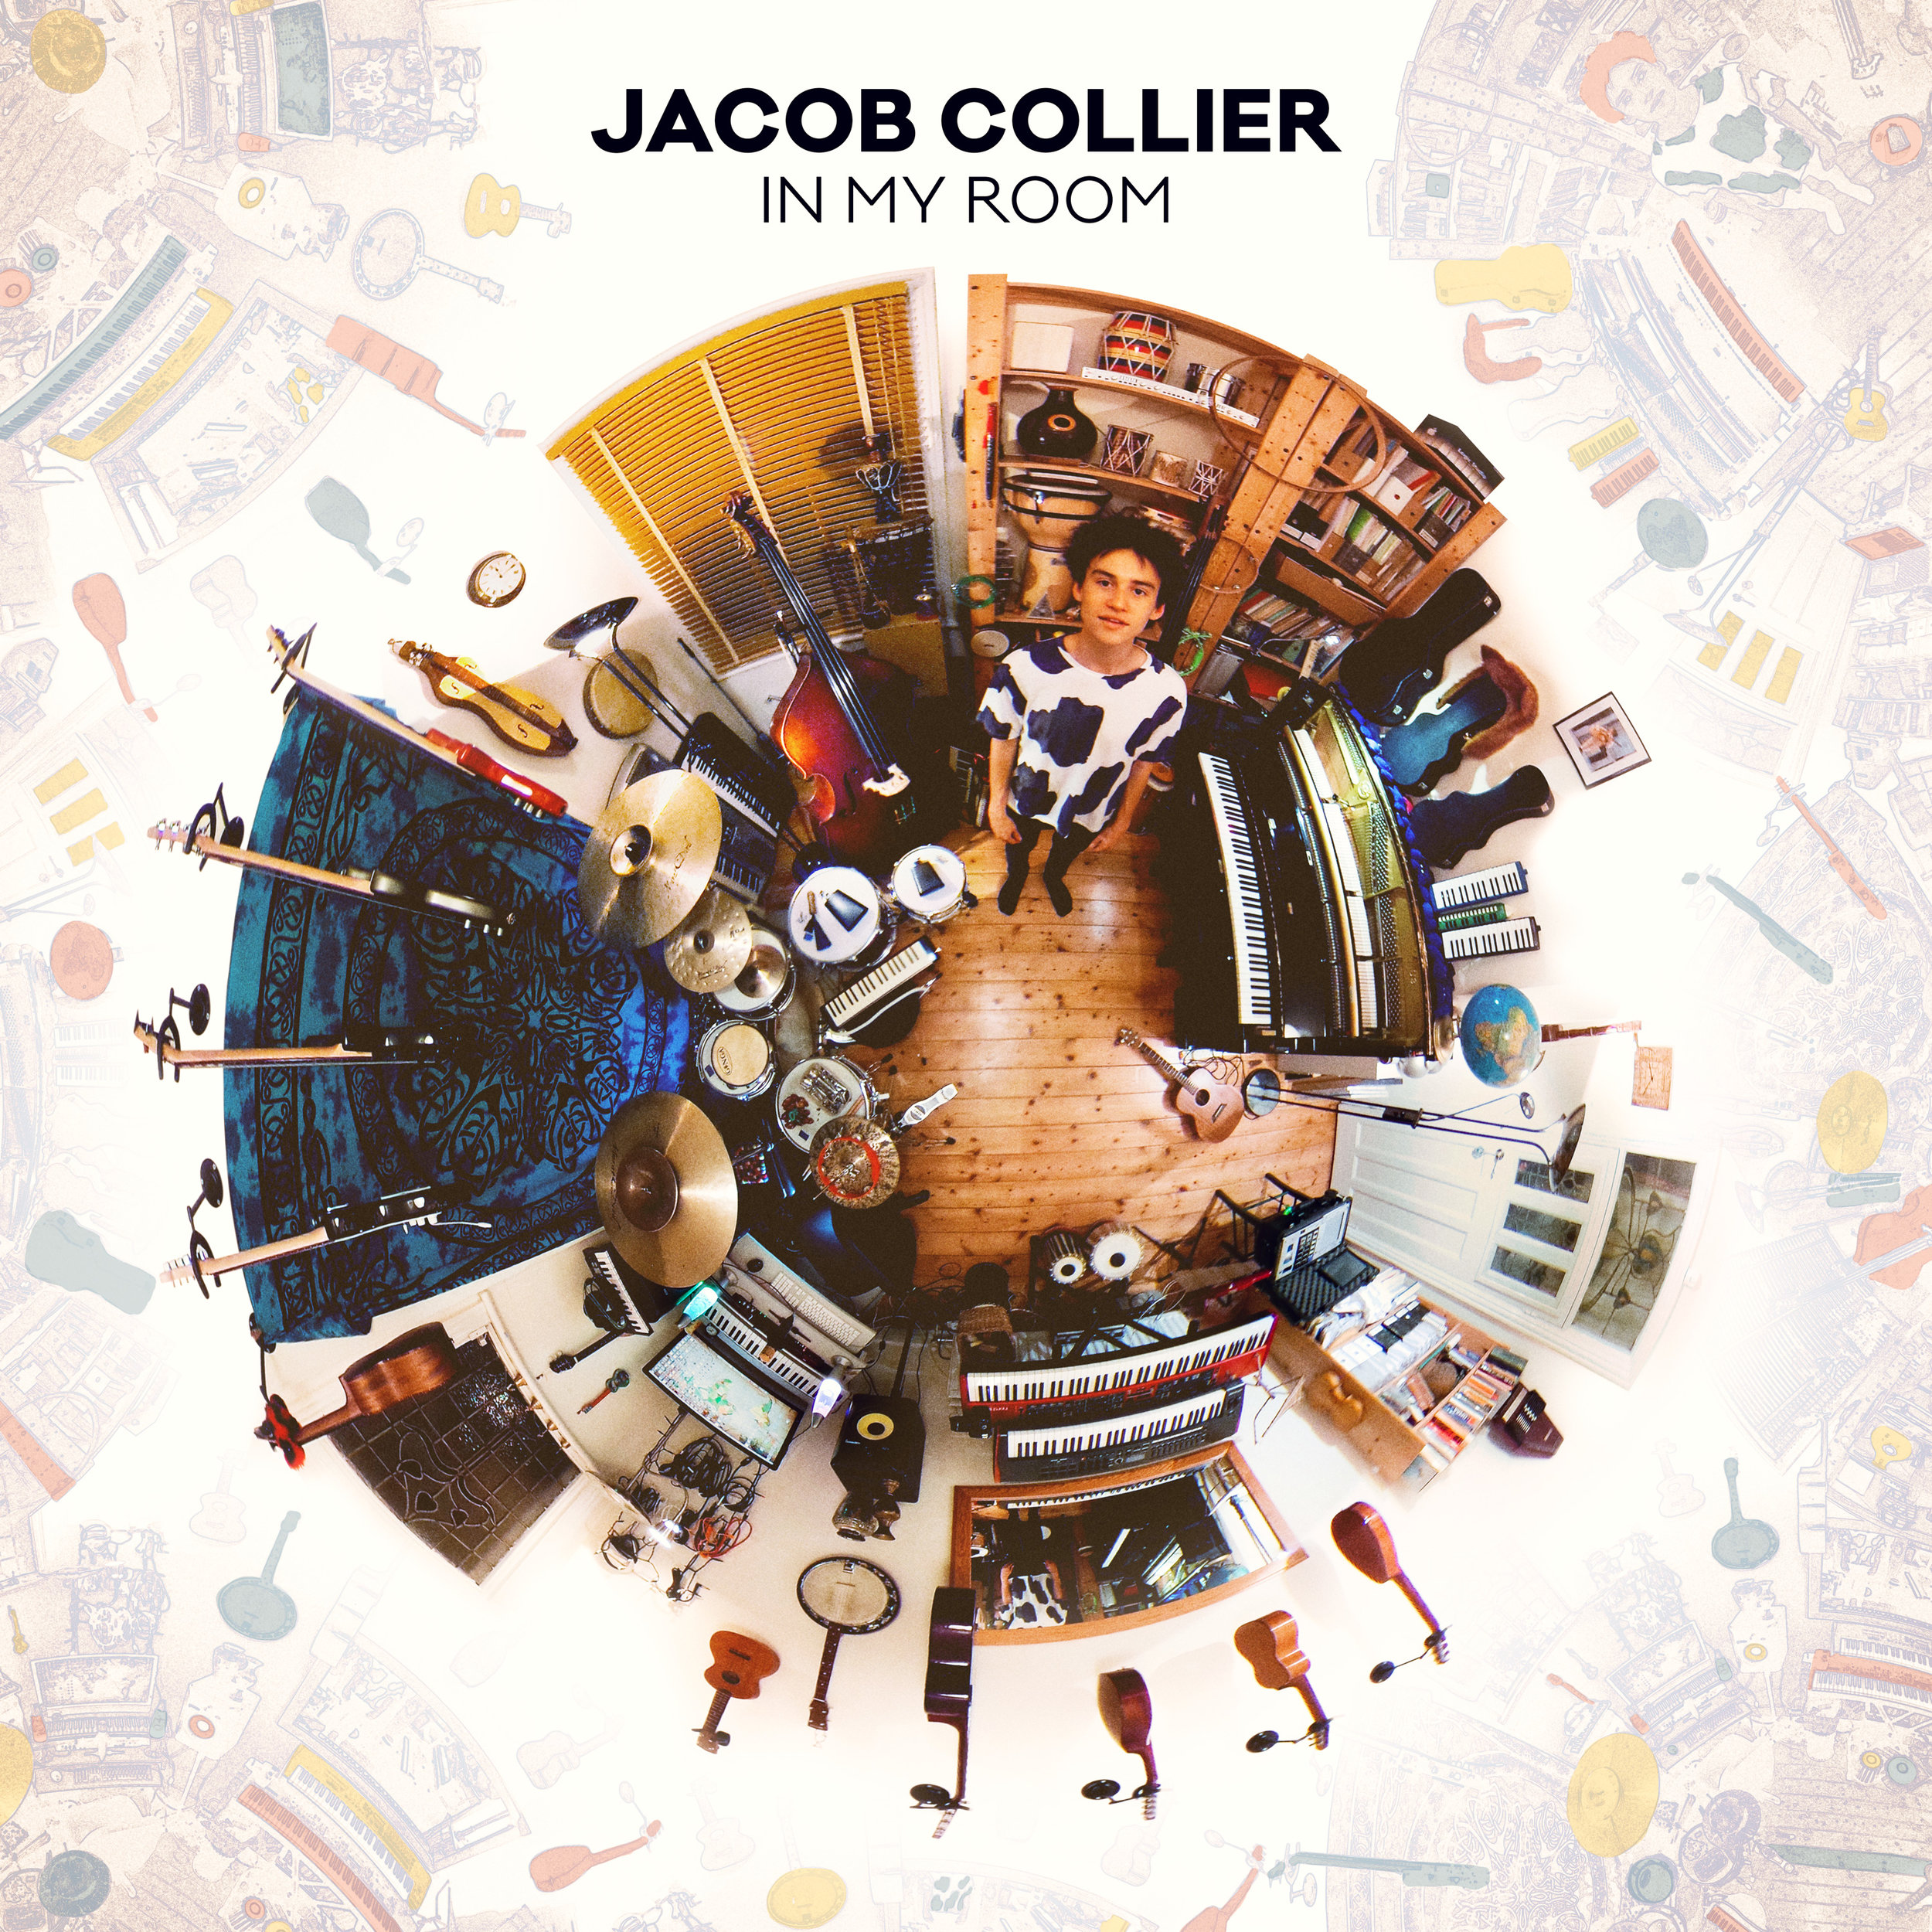 3000px_201603_jacobCollier_inMyRoom_cover.jpg